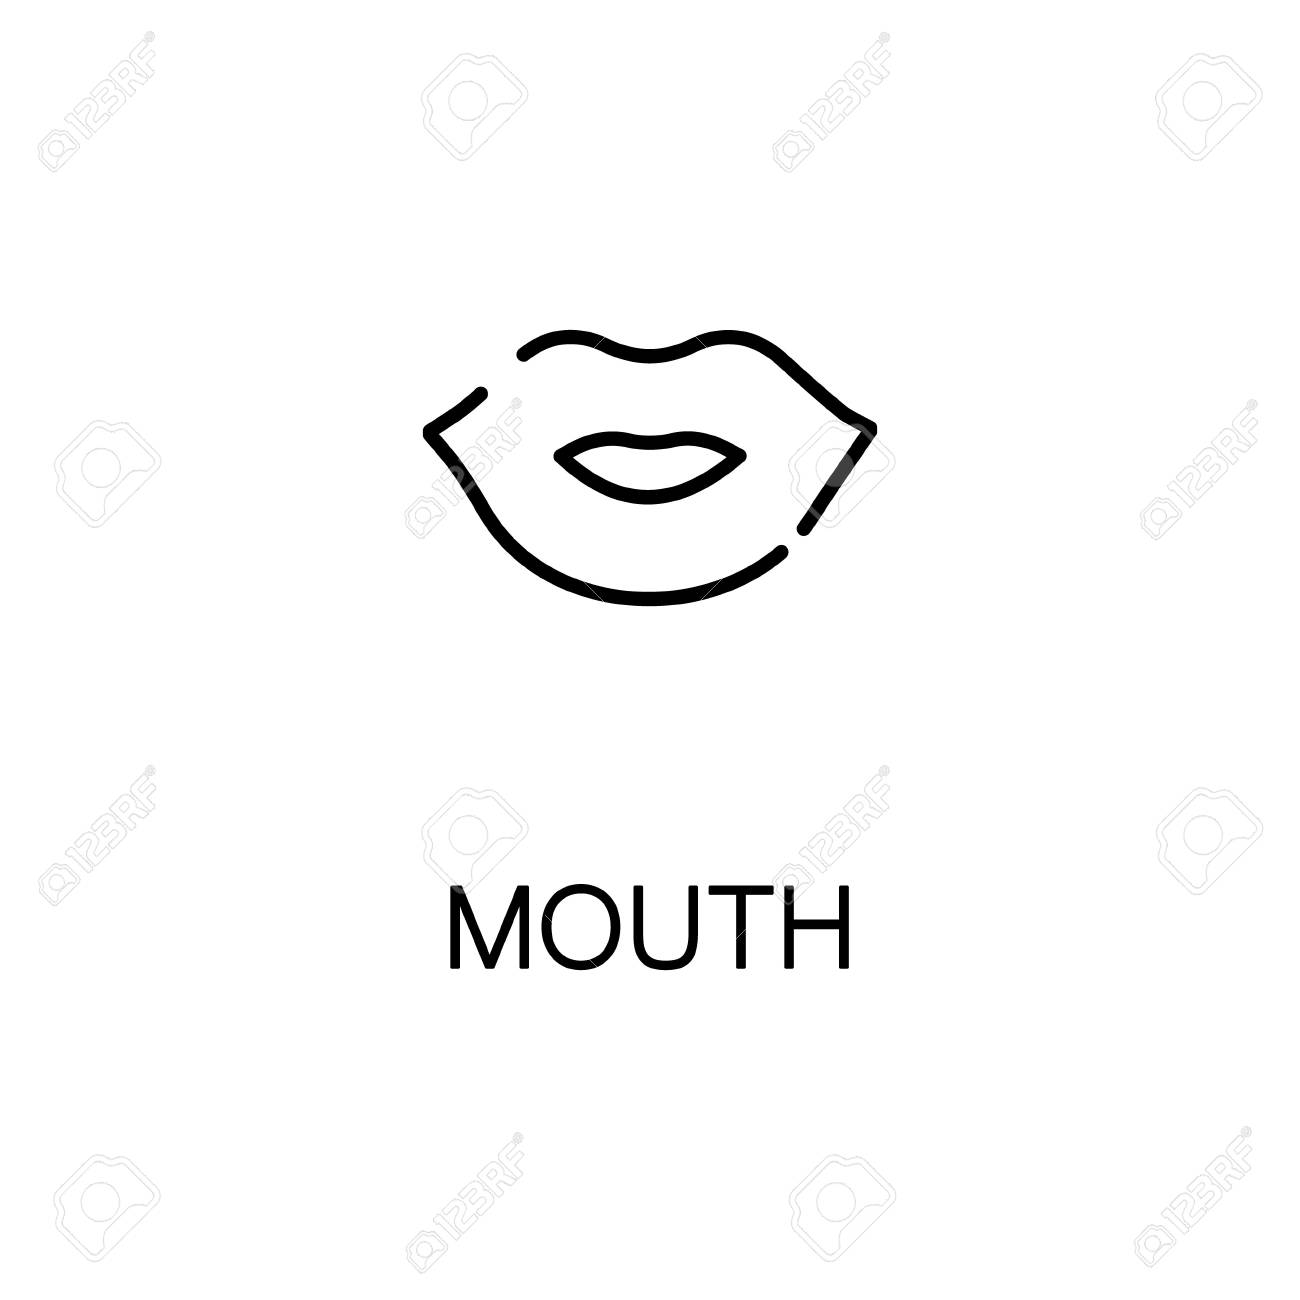 mouth flat icon single high quality outline symbol of human